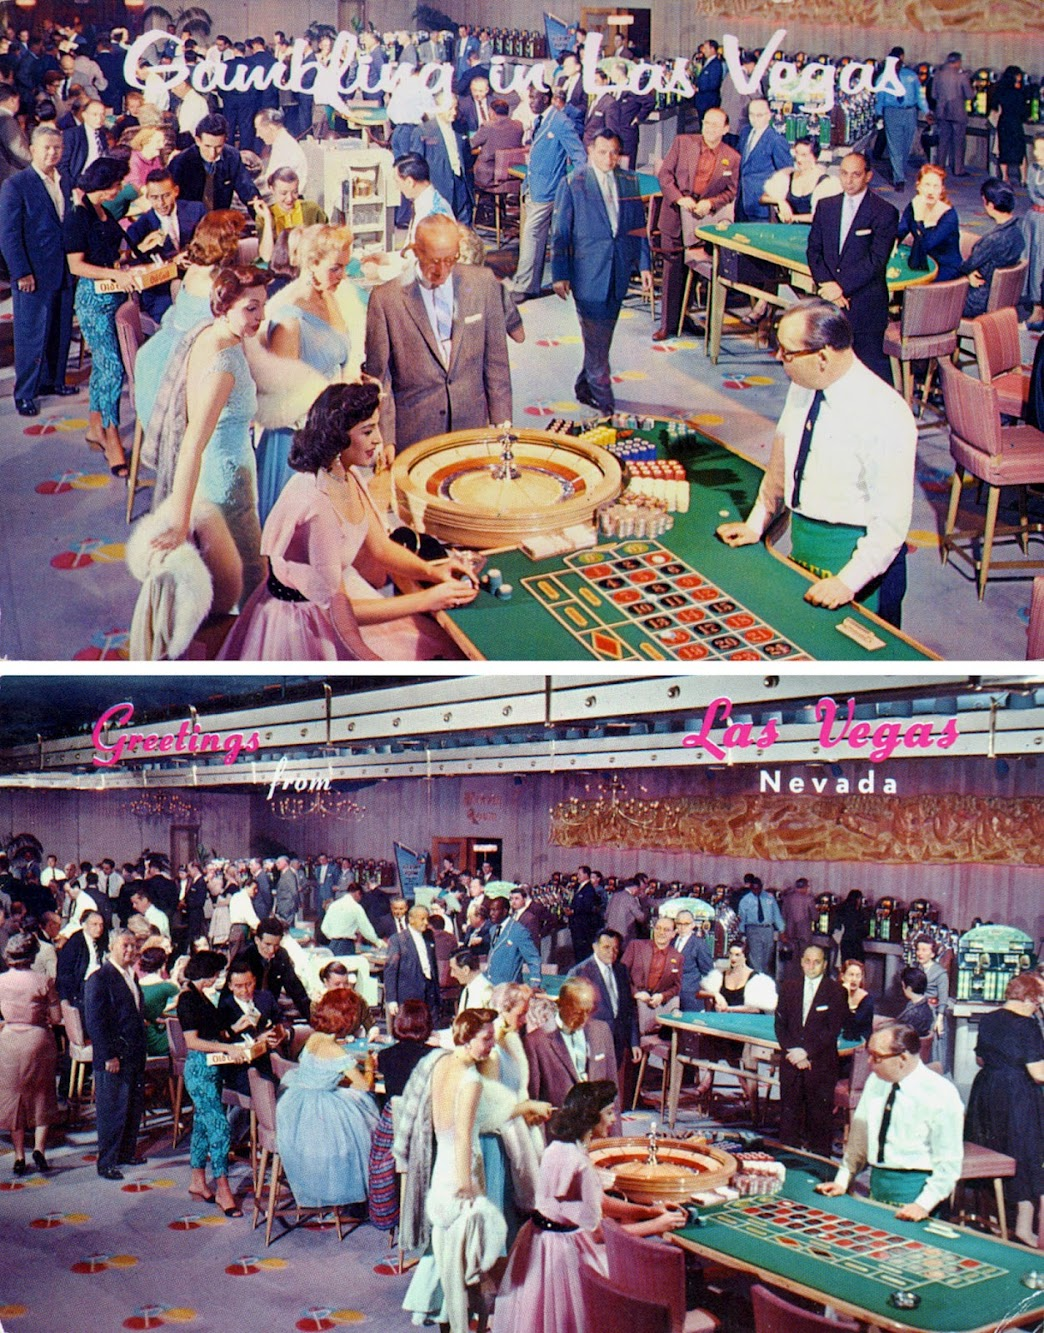 1950's Gambling in Las Vegas